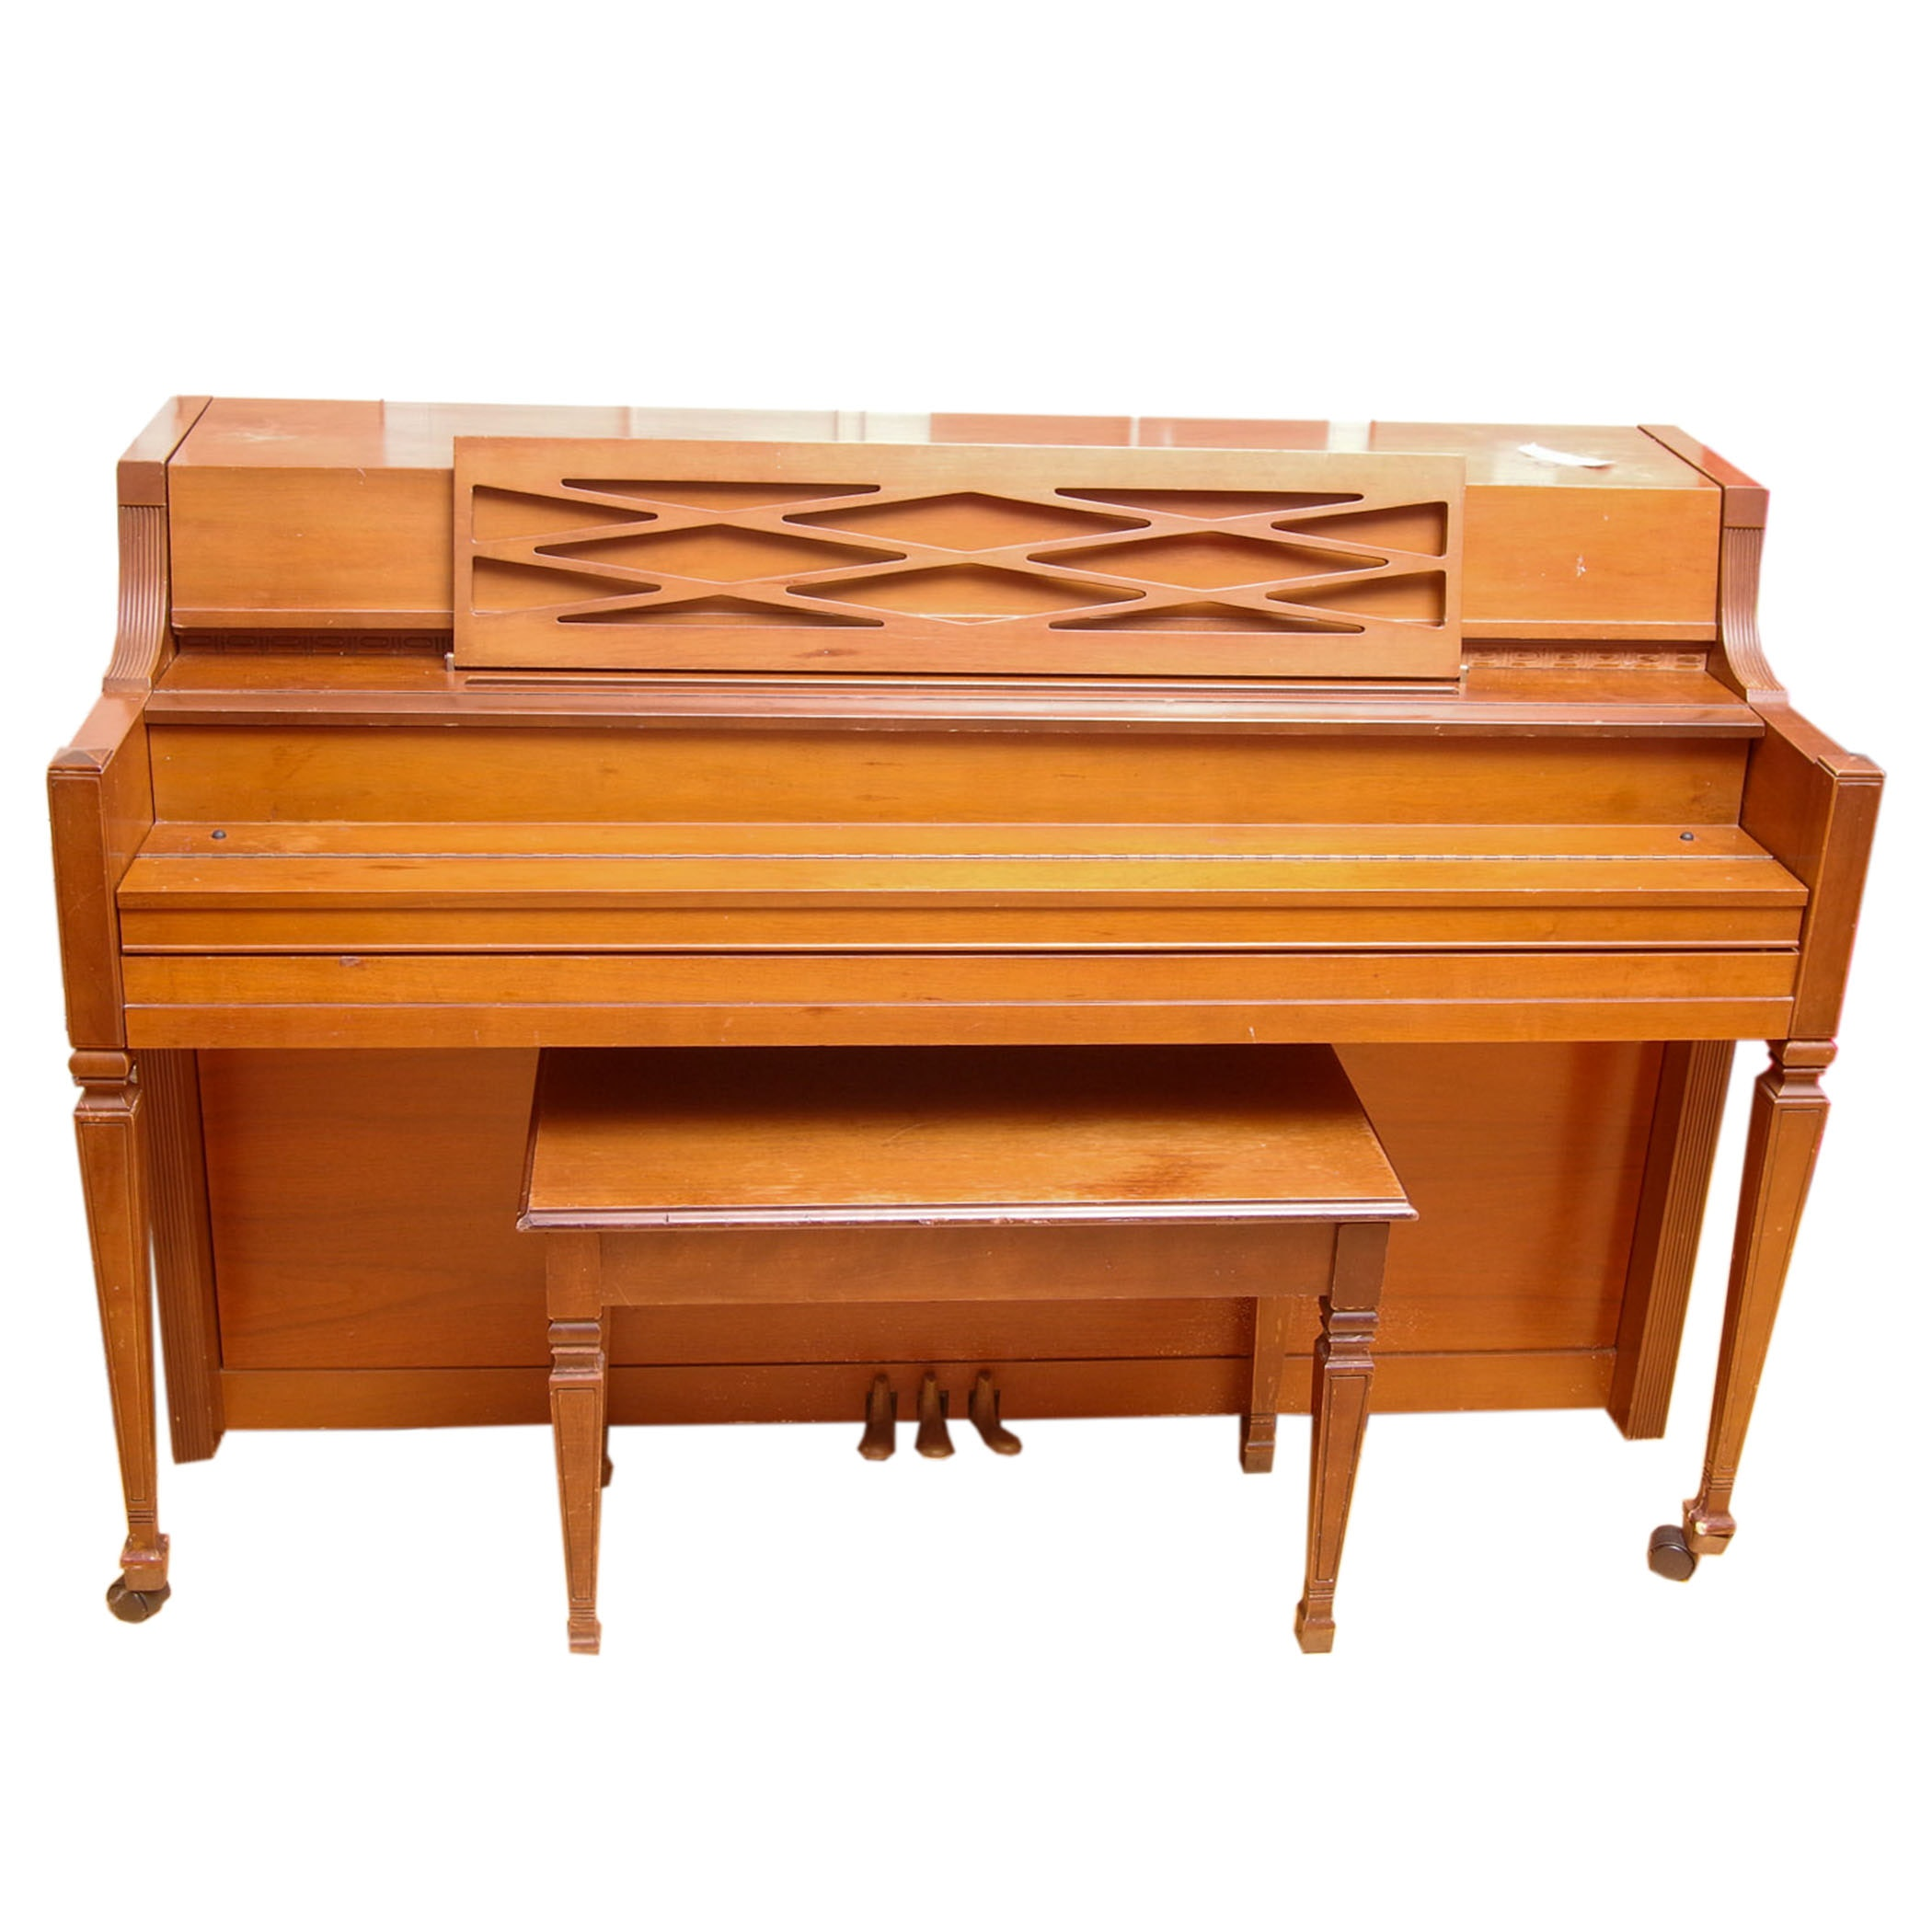 Story & Clark Spinet Piano and Bench